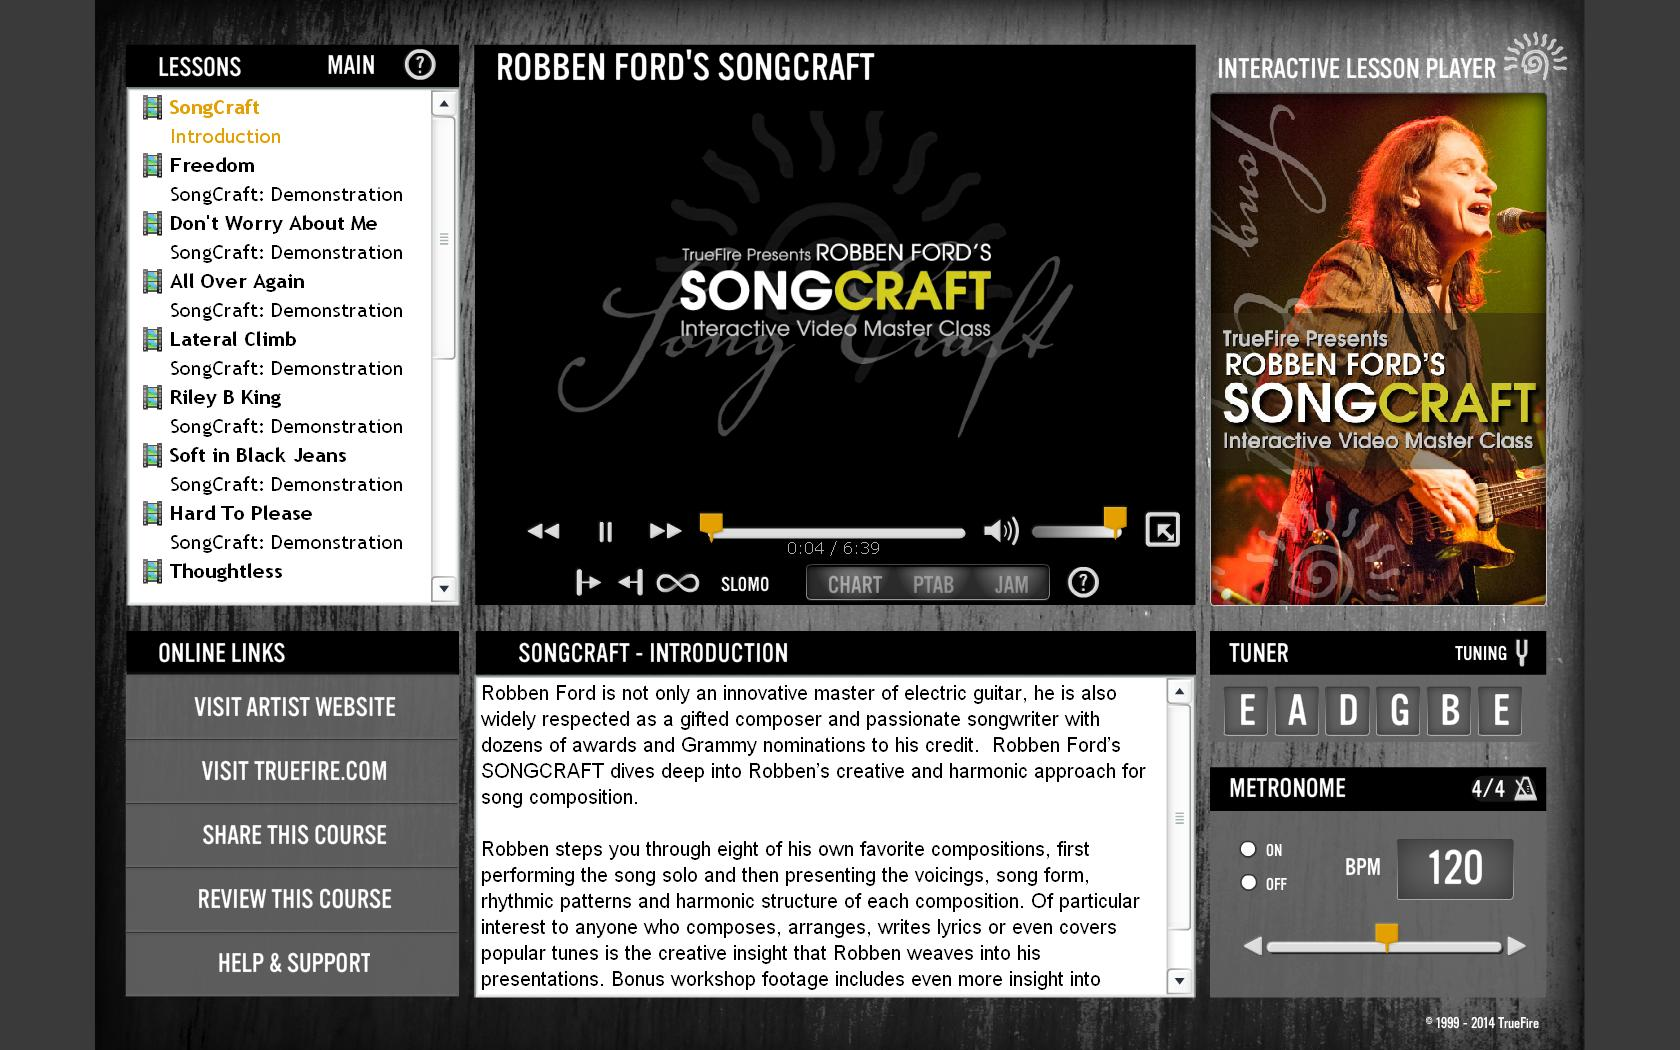 Truefire - Robben Ford's Songcraft (2013)